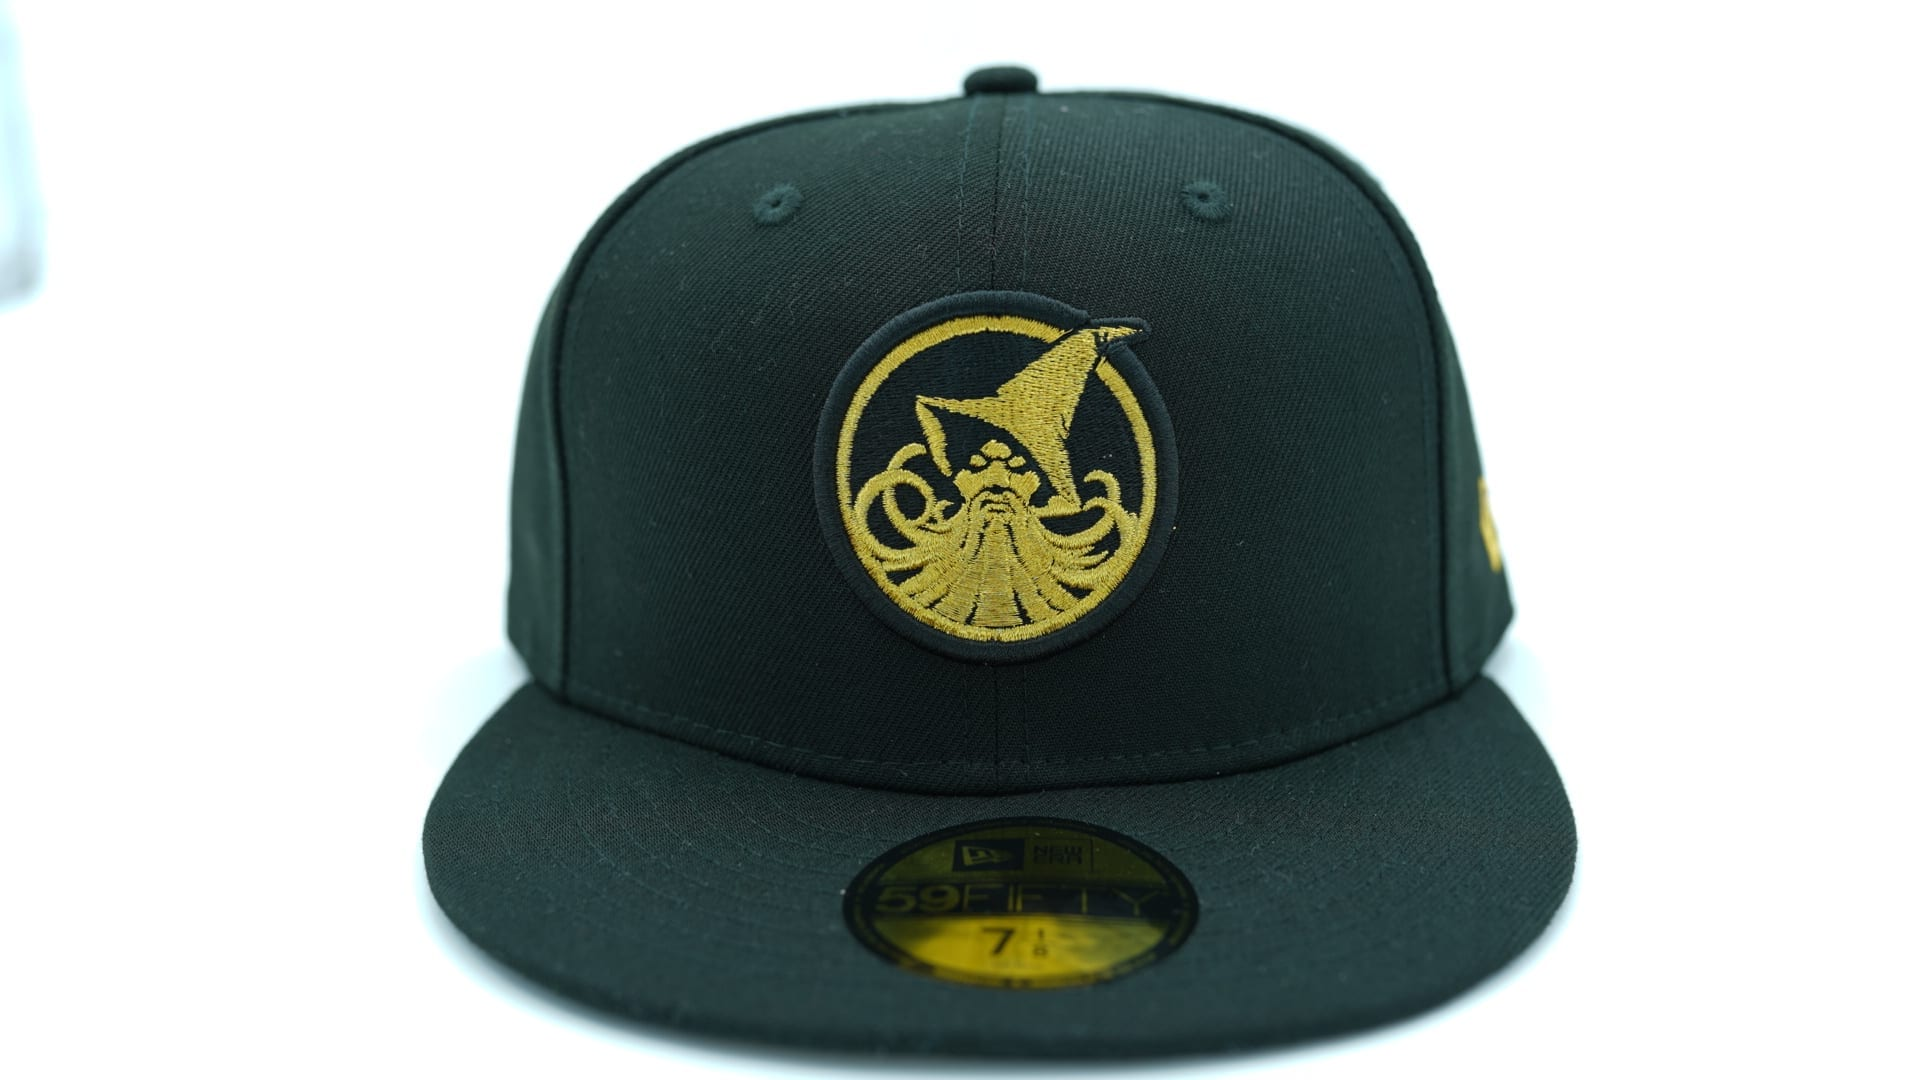 society-x-new-era-the-big-s-fitted-59fifty-fifty-fitted-baseball-cap-hat